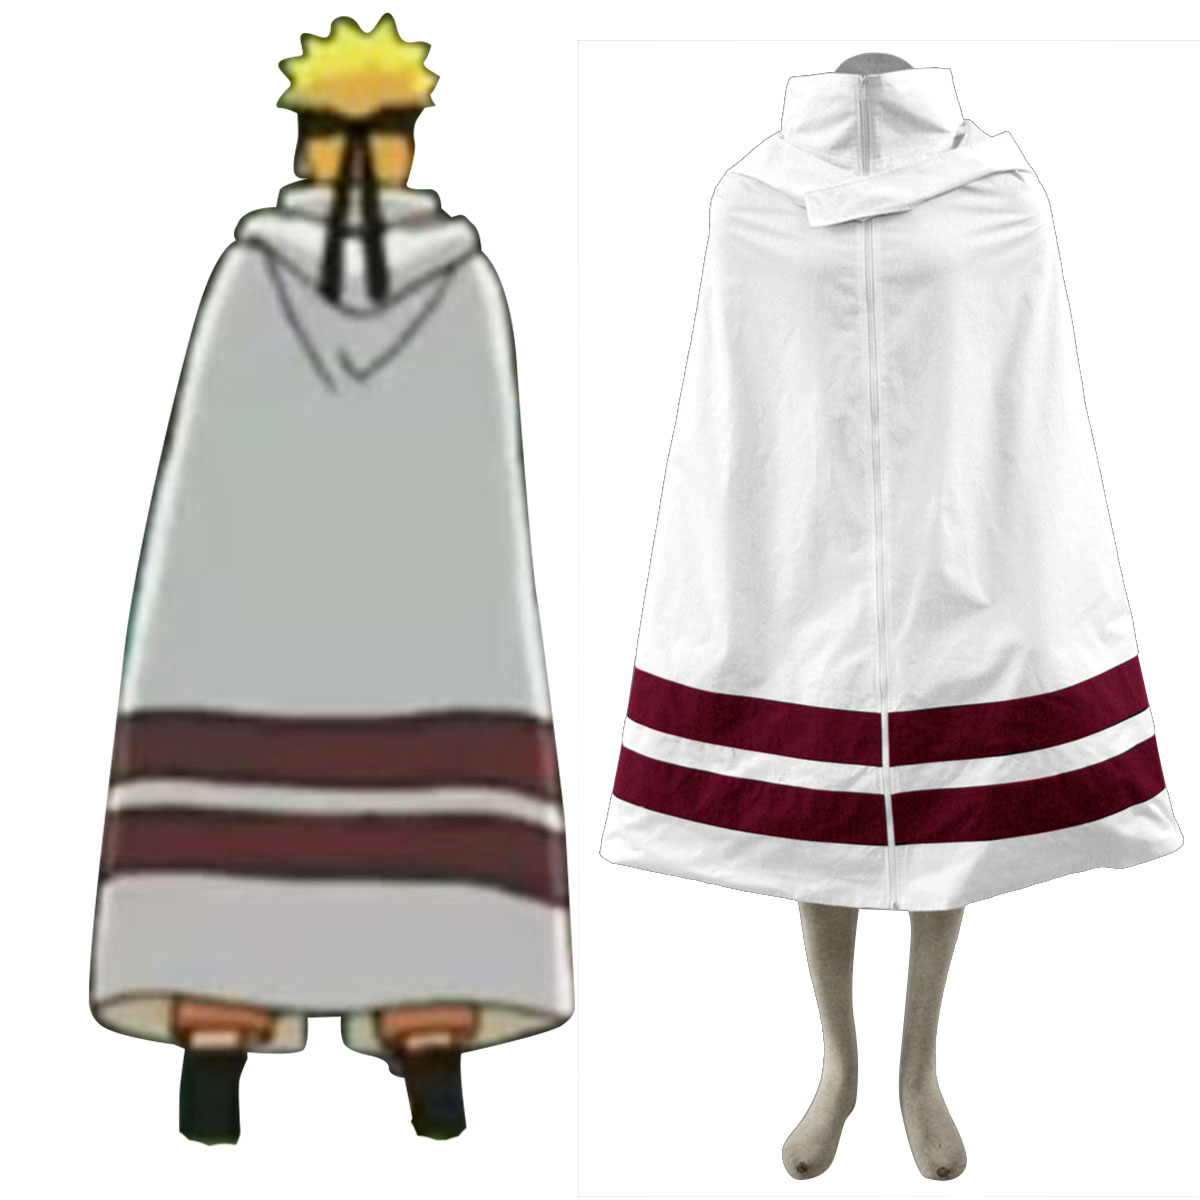 Naruto Shippuden Konoha Cloak 1 Anime Cosplay Costumes Outfit